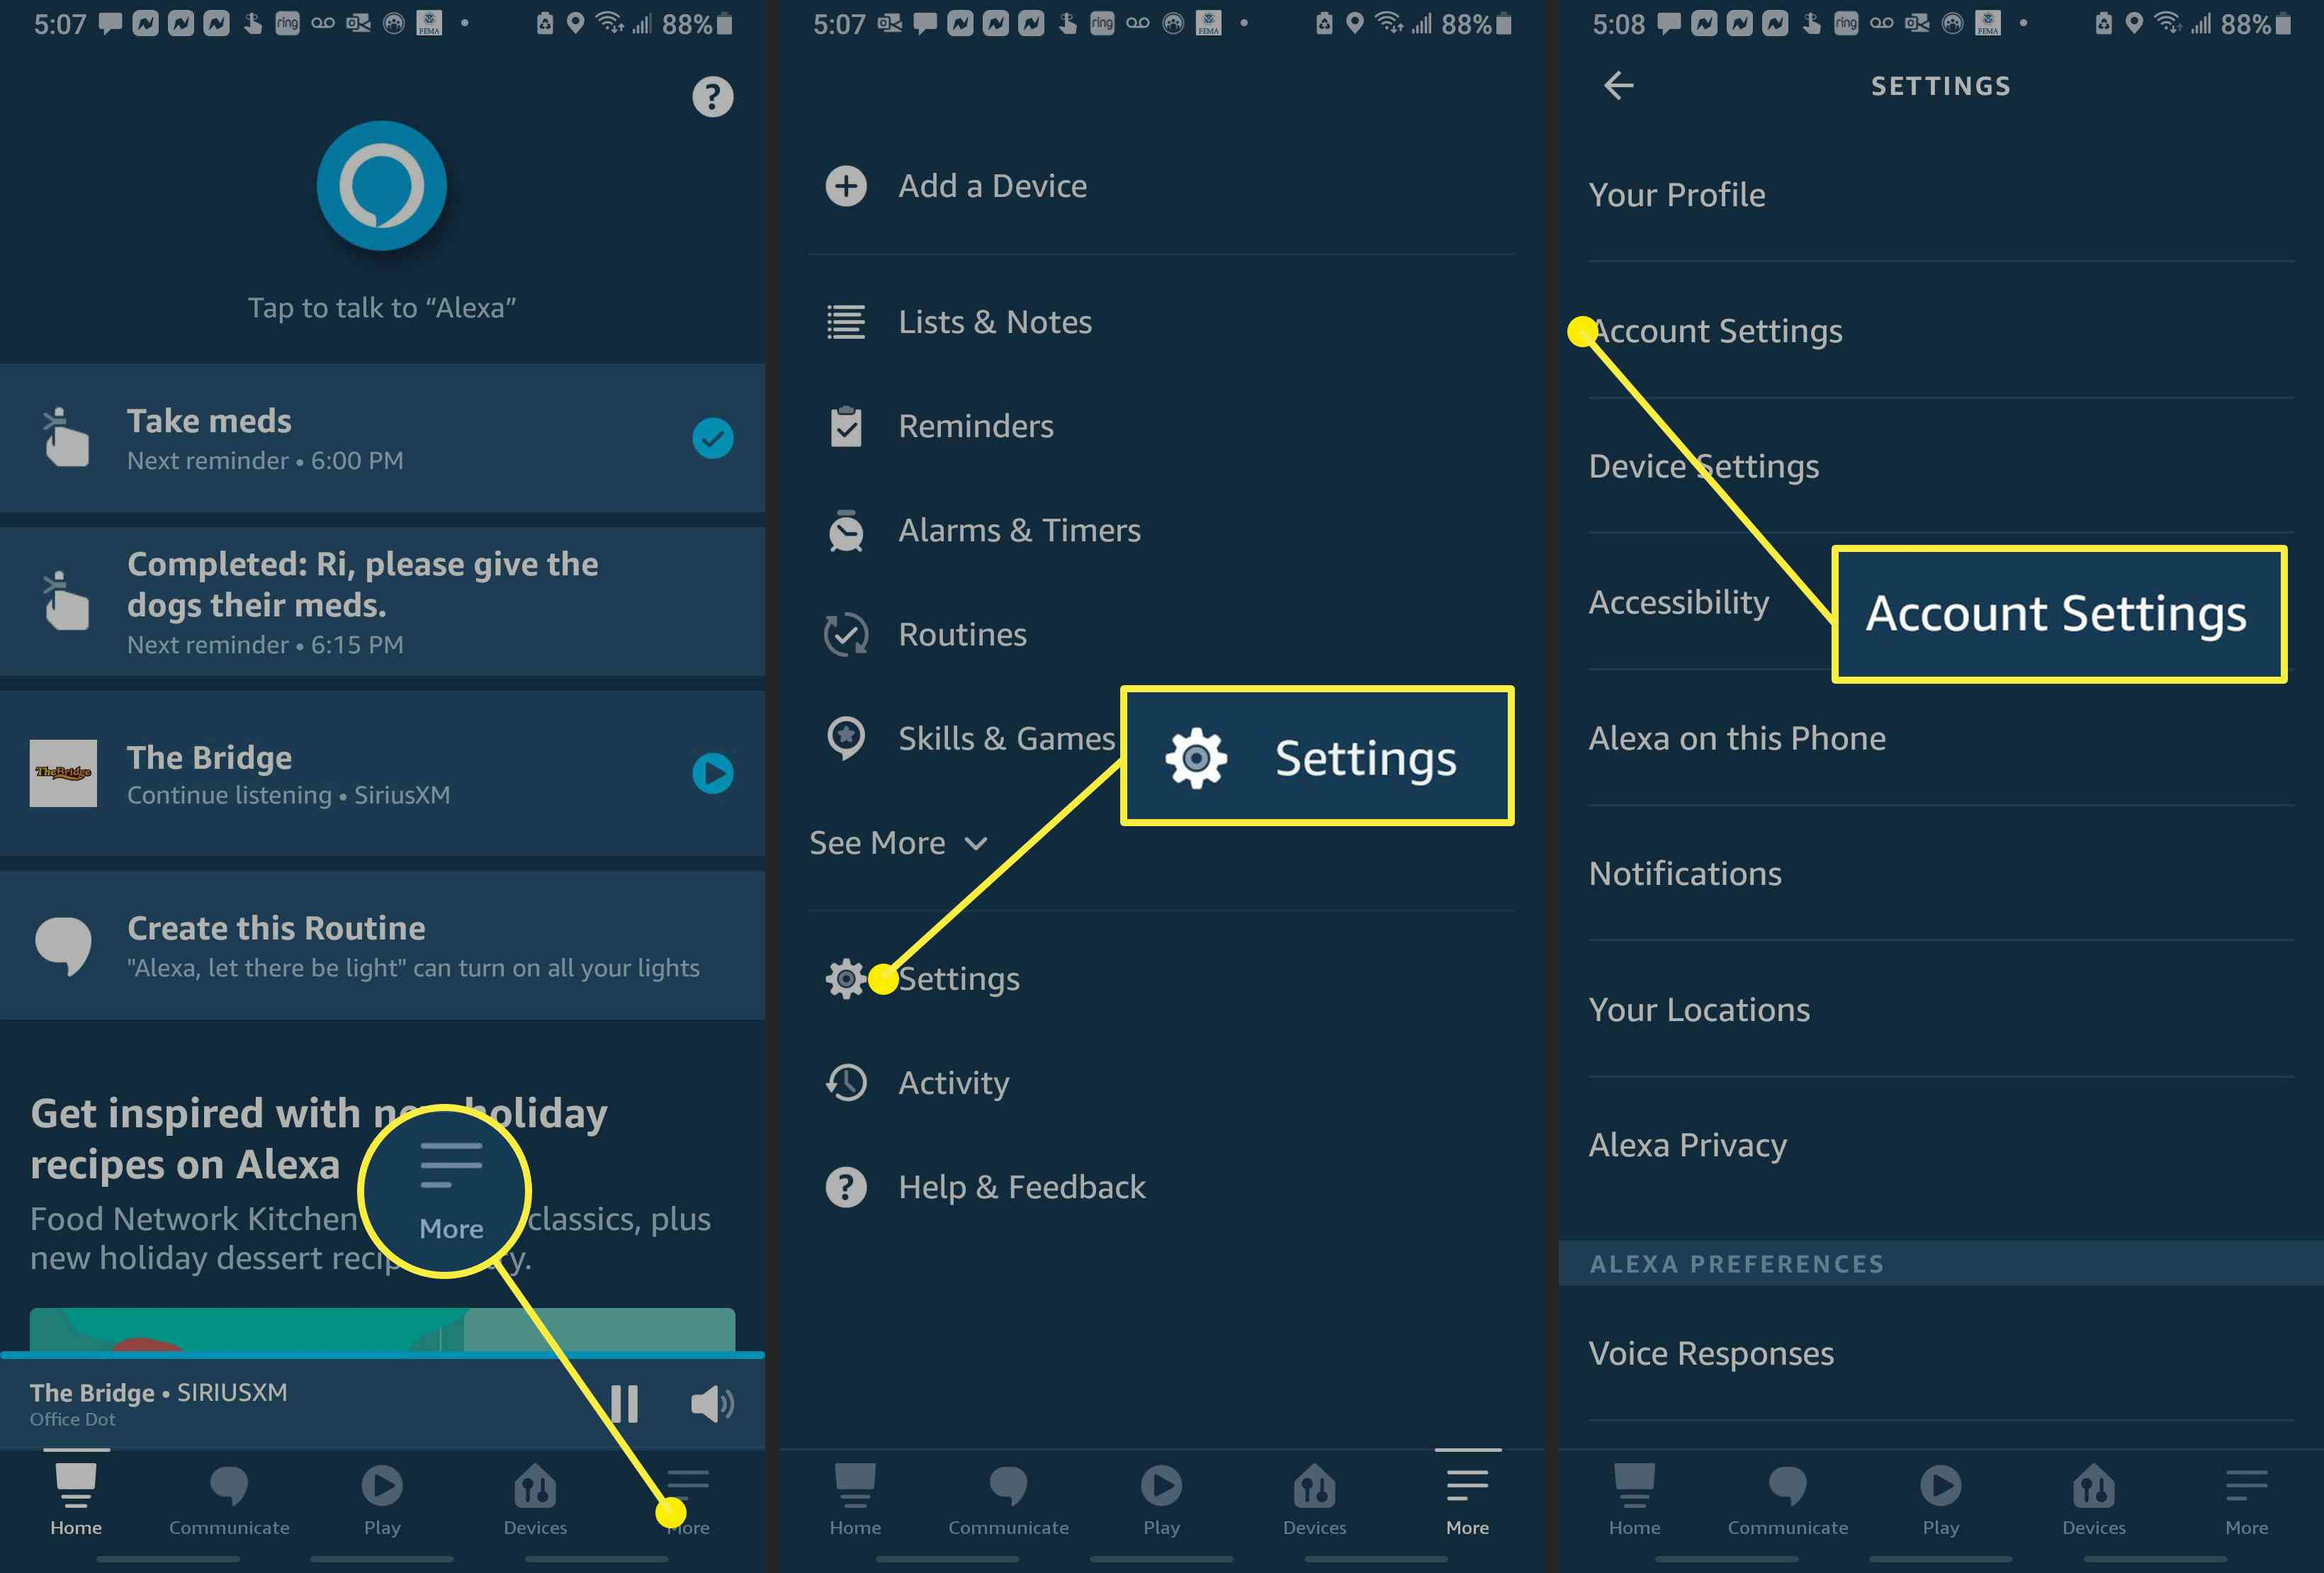 Screenshots of the Alexa app, showing how to access Account Settings.